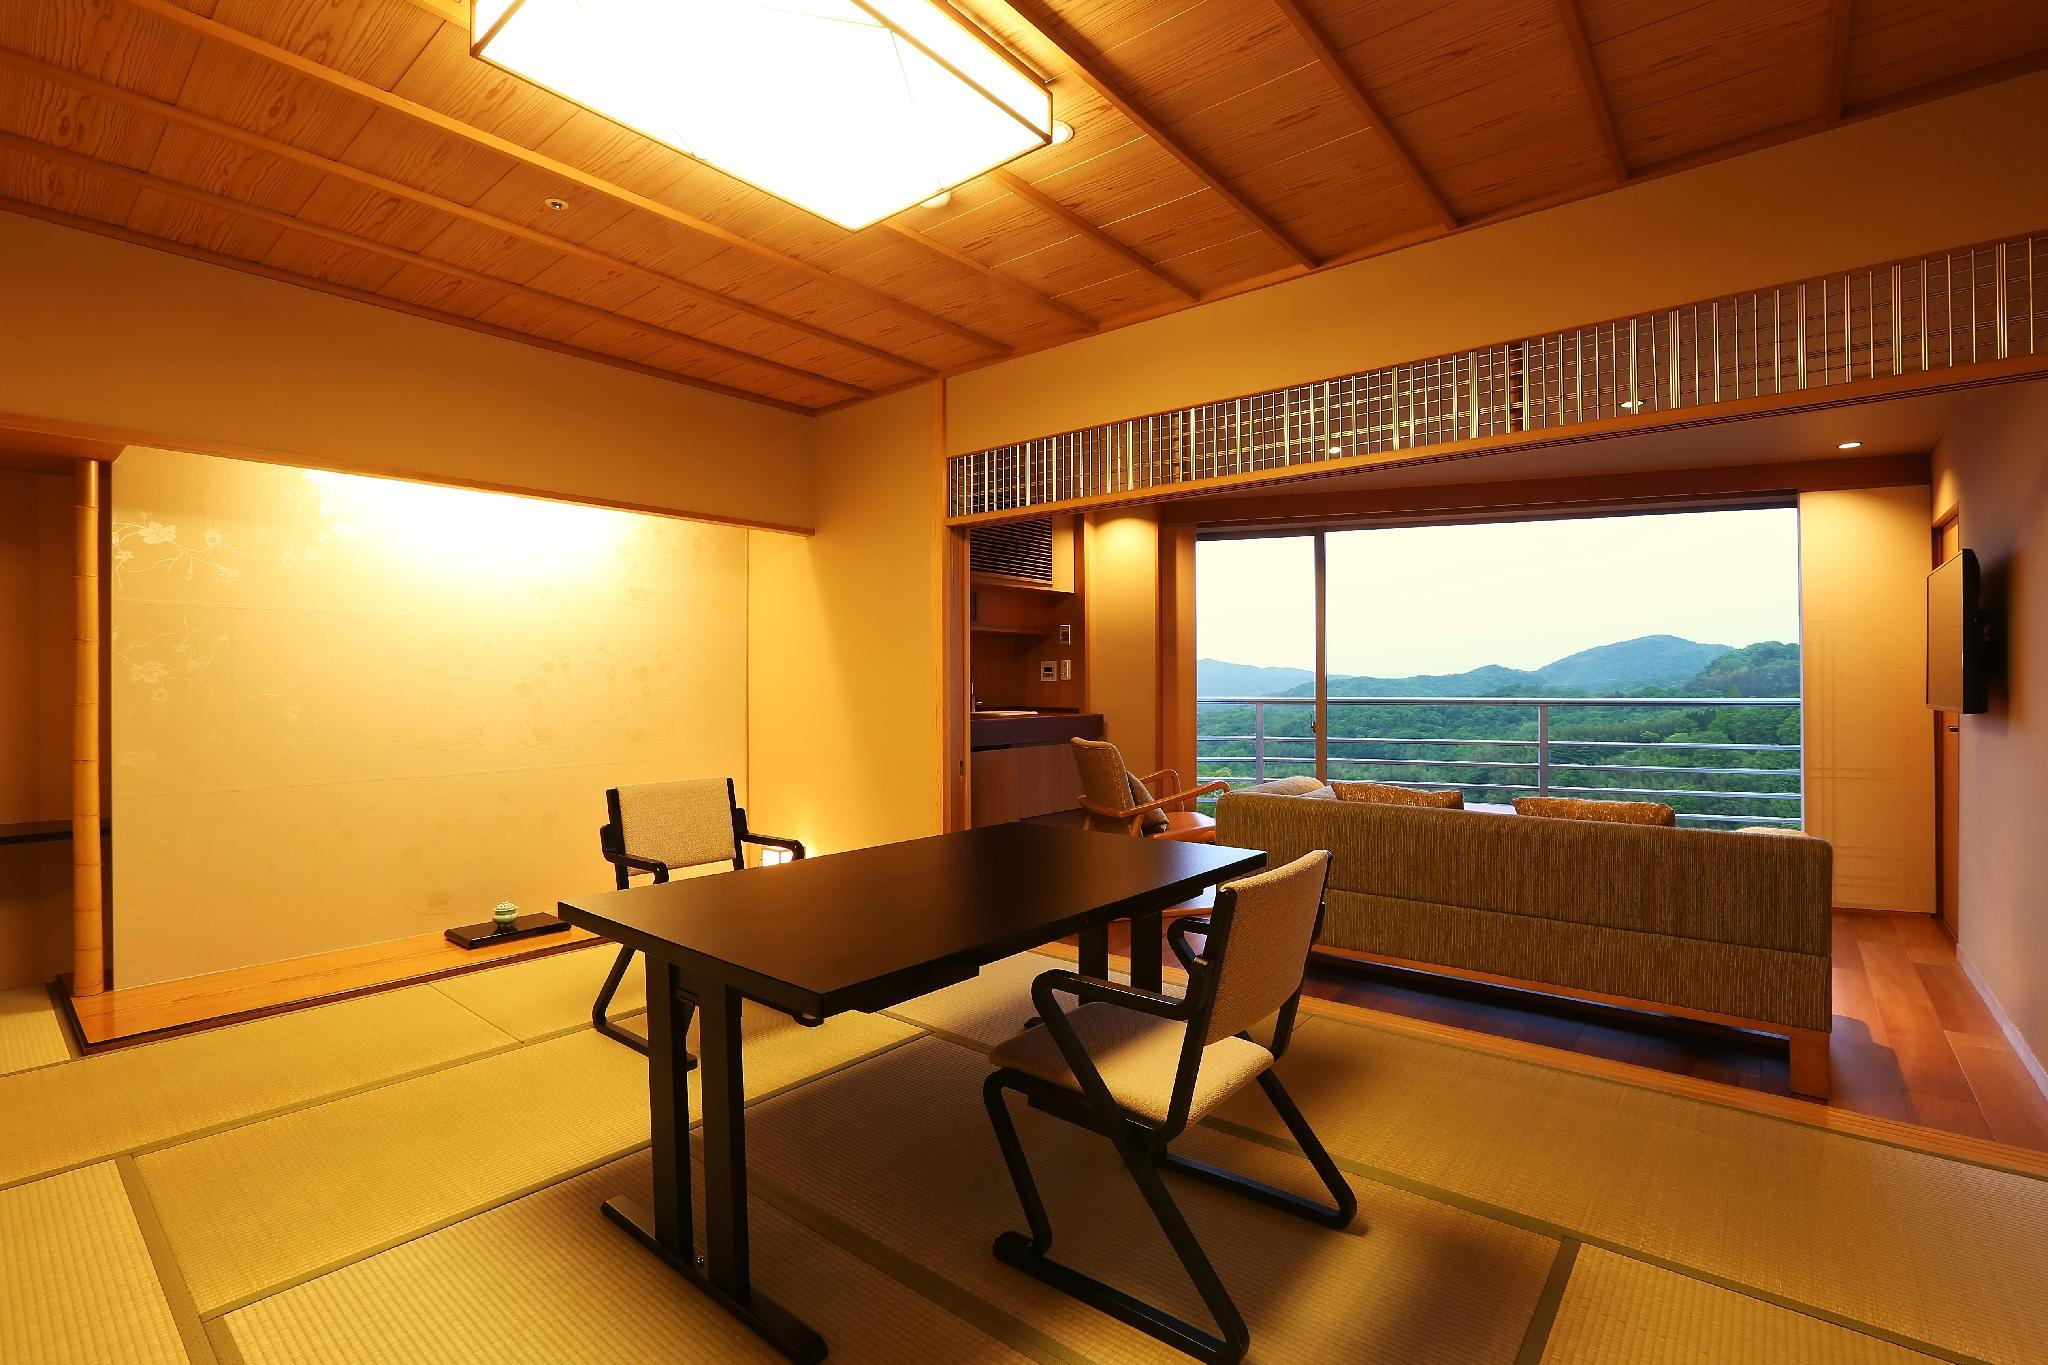 【全新裝修】和洋室客房 - 可住5人 (Japanese Western Style Room for 5 People - Newly Renovated)